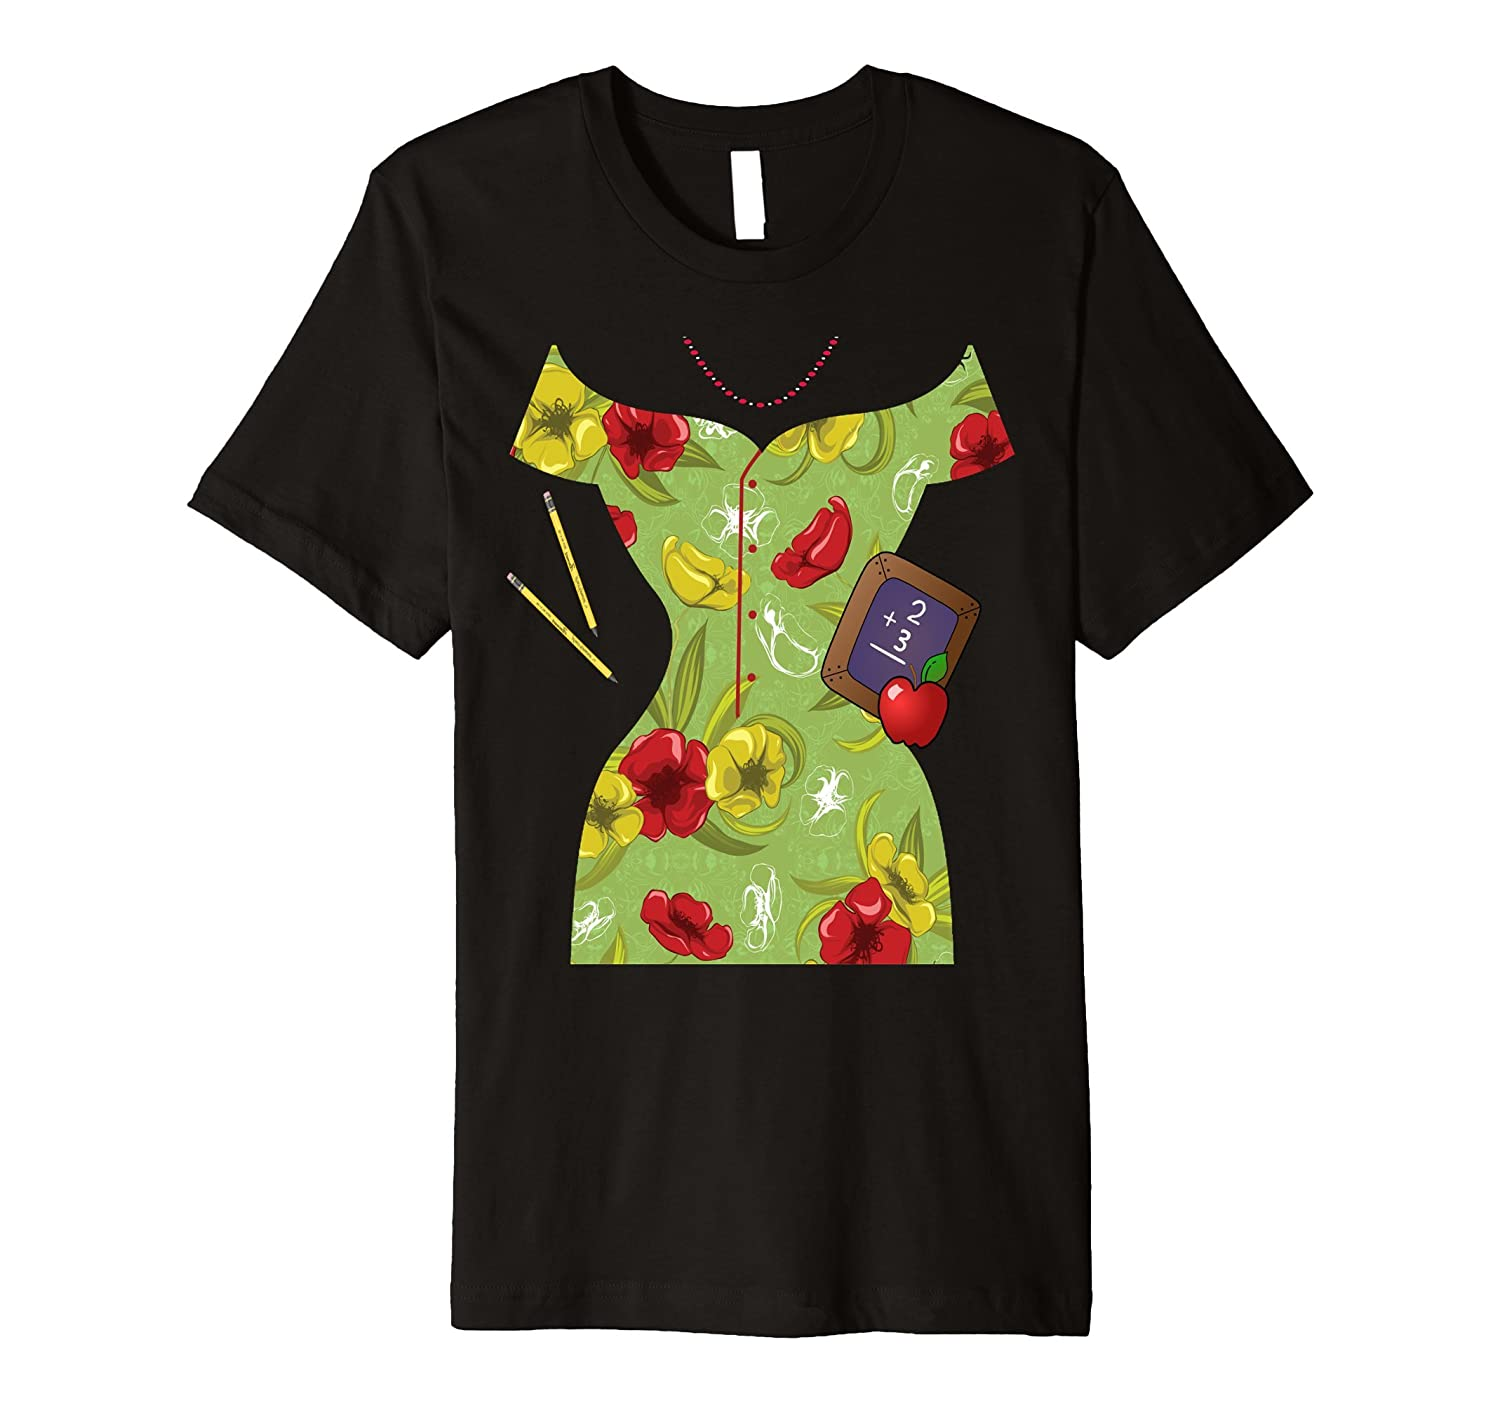 Teacher Dress Halloween Costume T-Shirt